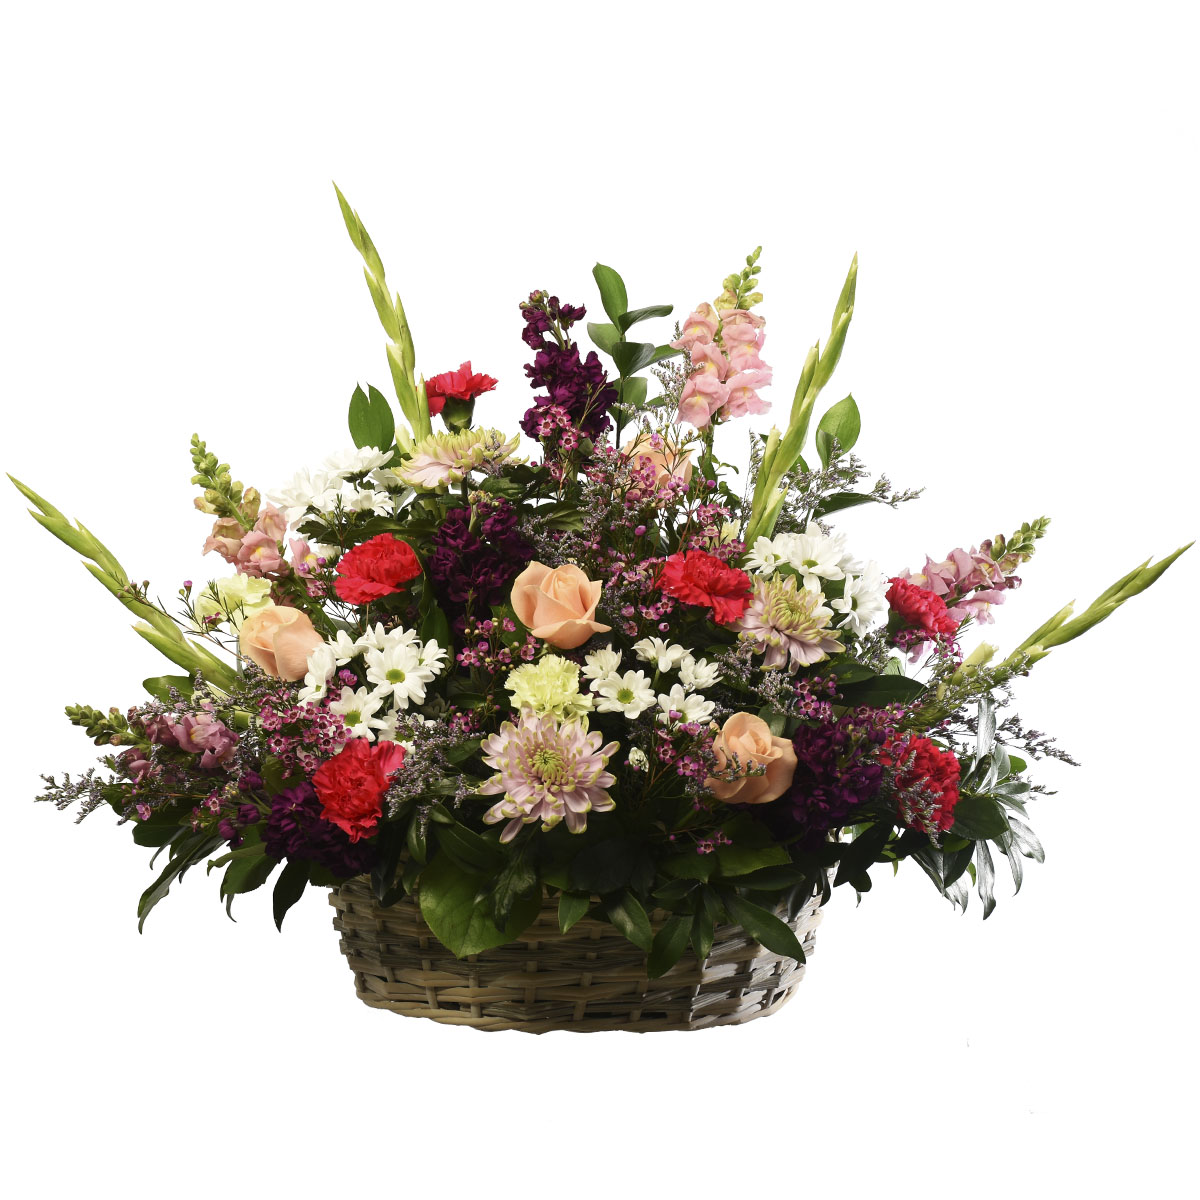 Flower arrangement in a basket with a mix selection of high quality flowers from your local Burnaby Florist Adele Rae